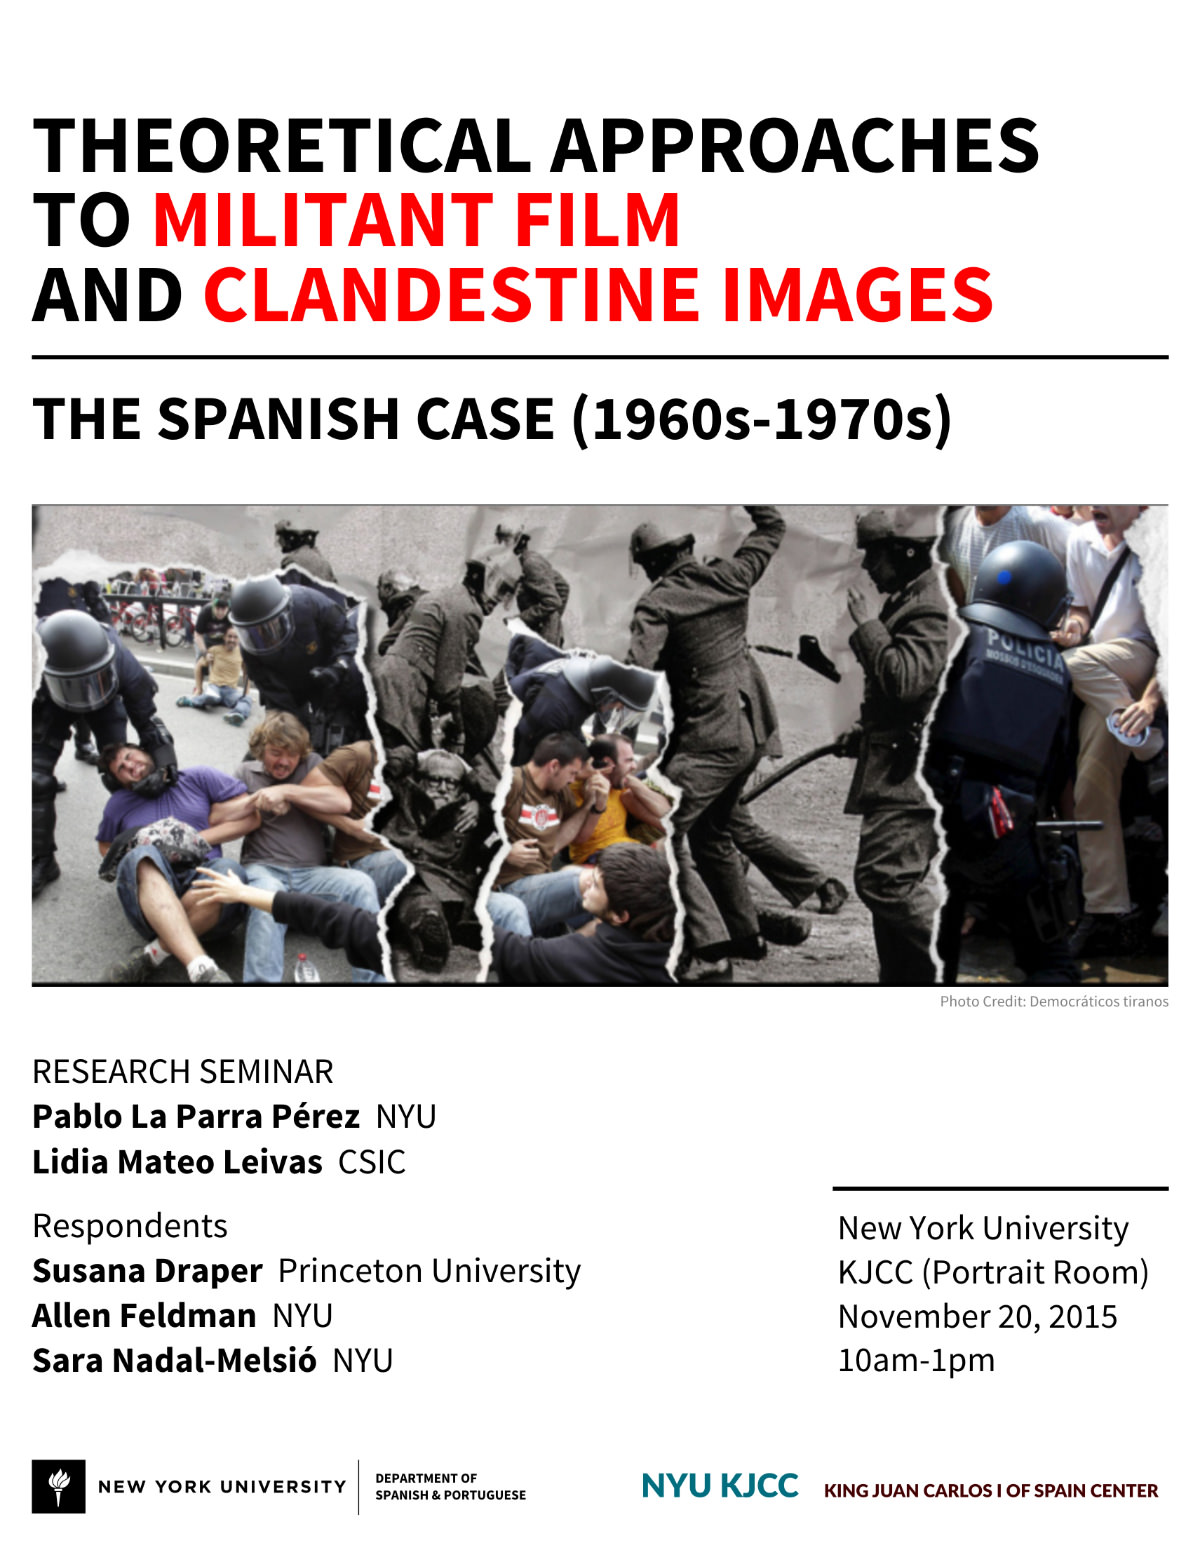 Theoretical Approaches to Militant and Clandestine Images